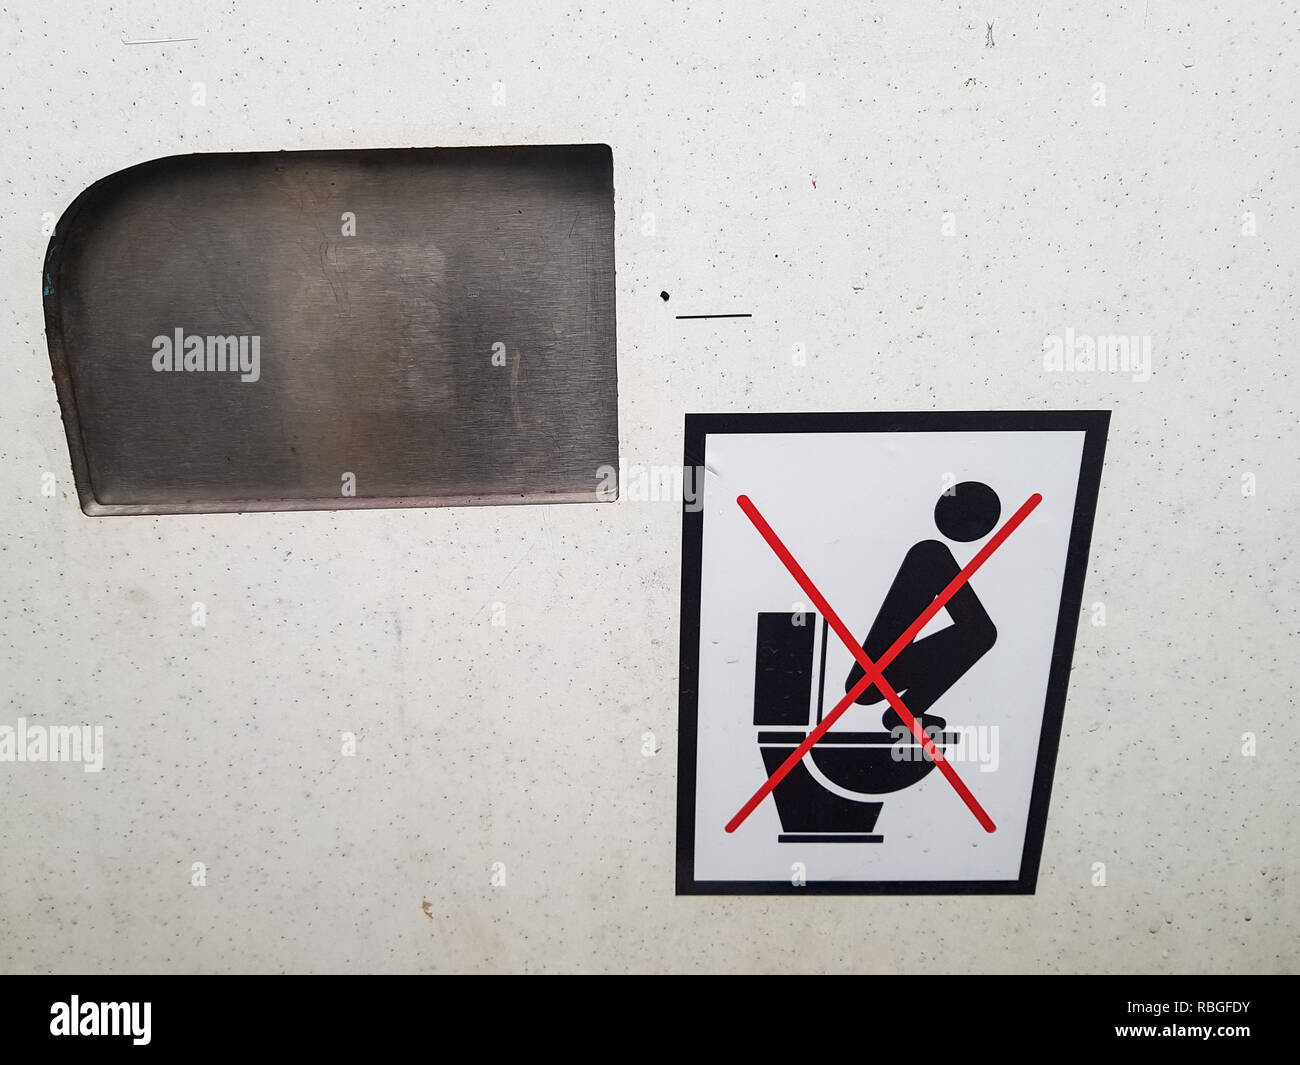 'Don't stand on the toilet seat' sign inside a dirty public toilet '